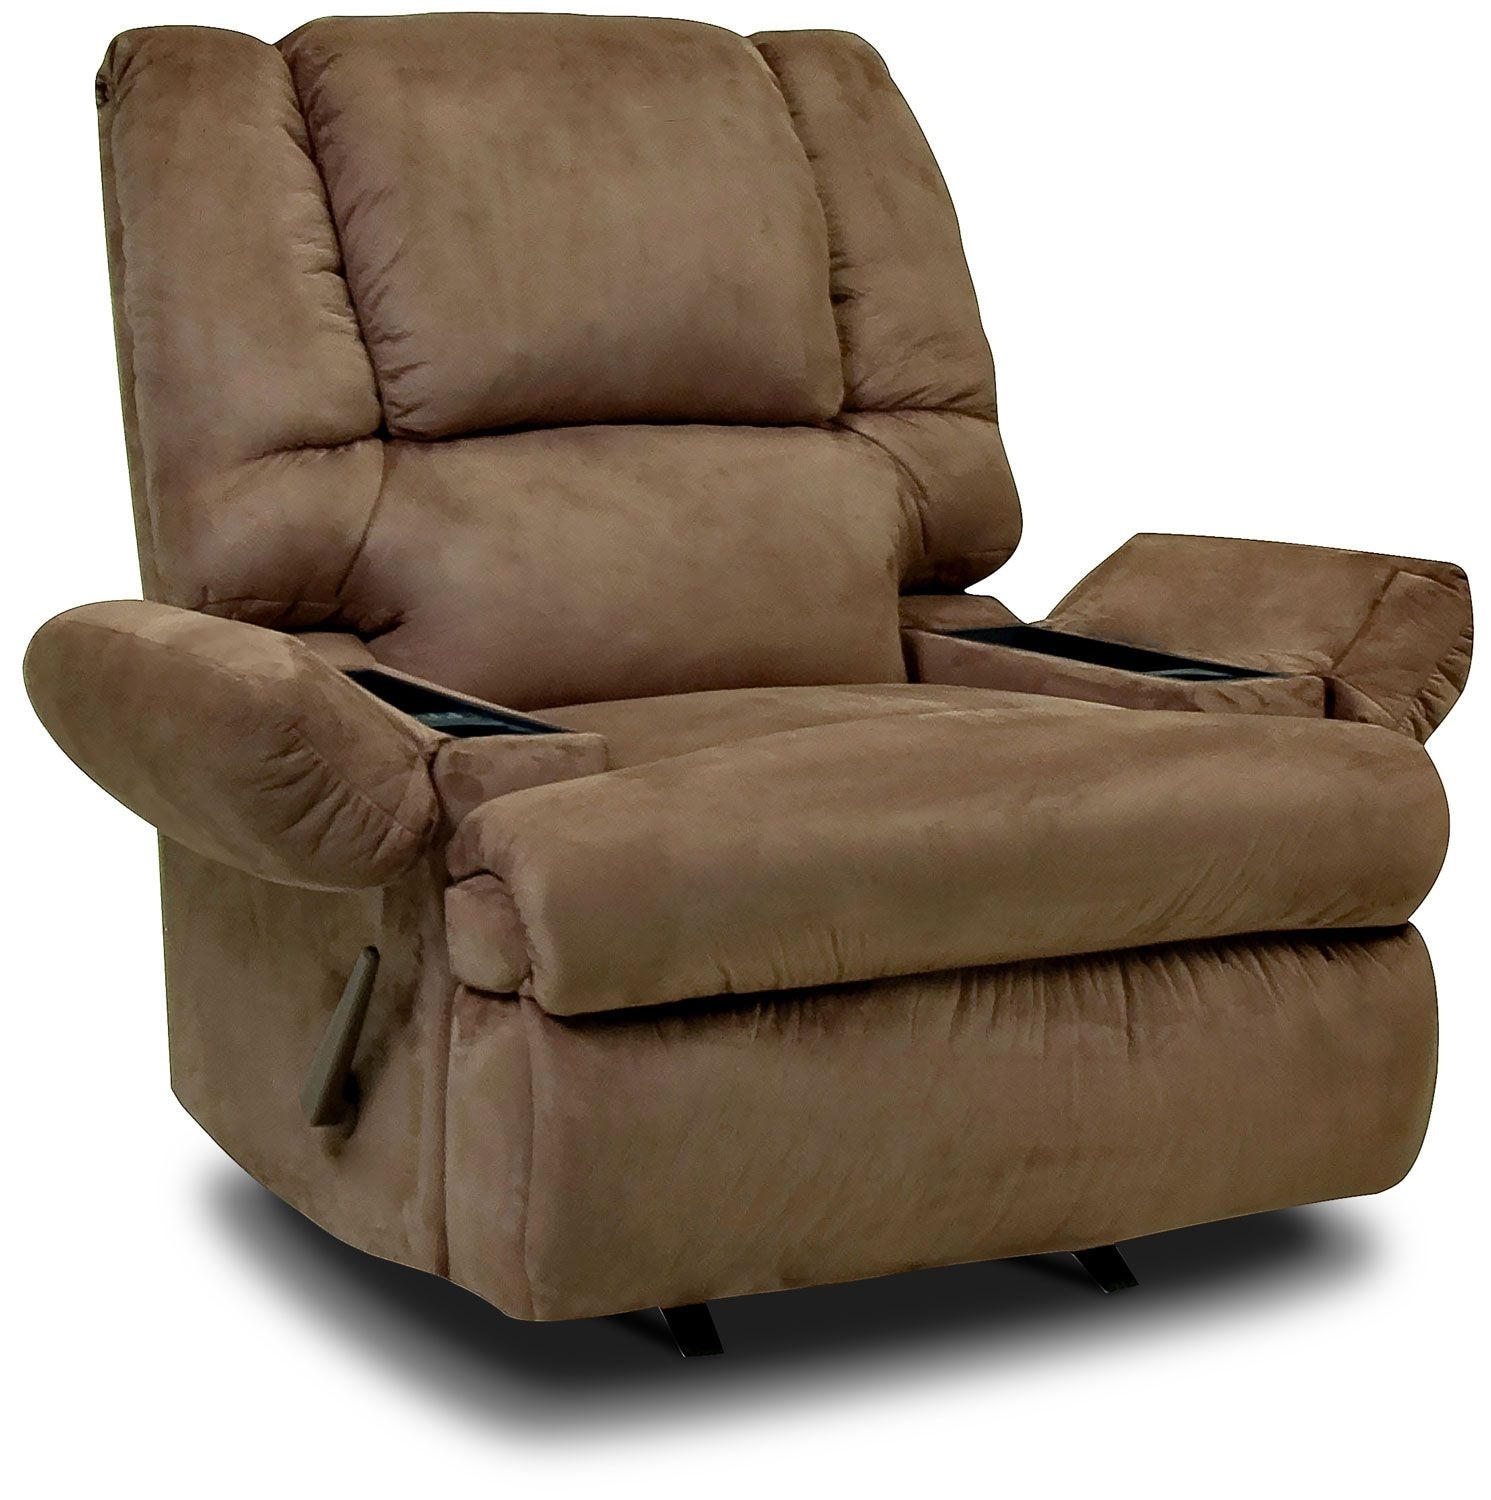 Designed2B Recliner 5598 Padded Suede Rocker with Storage Arms - Mocha